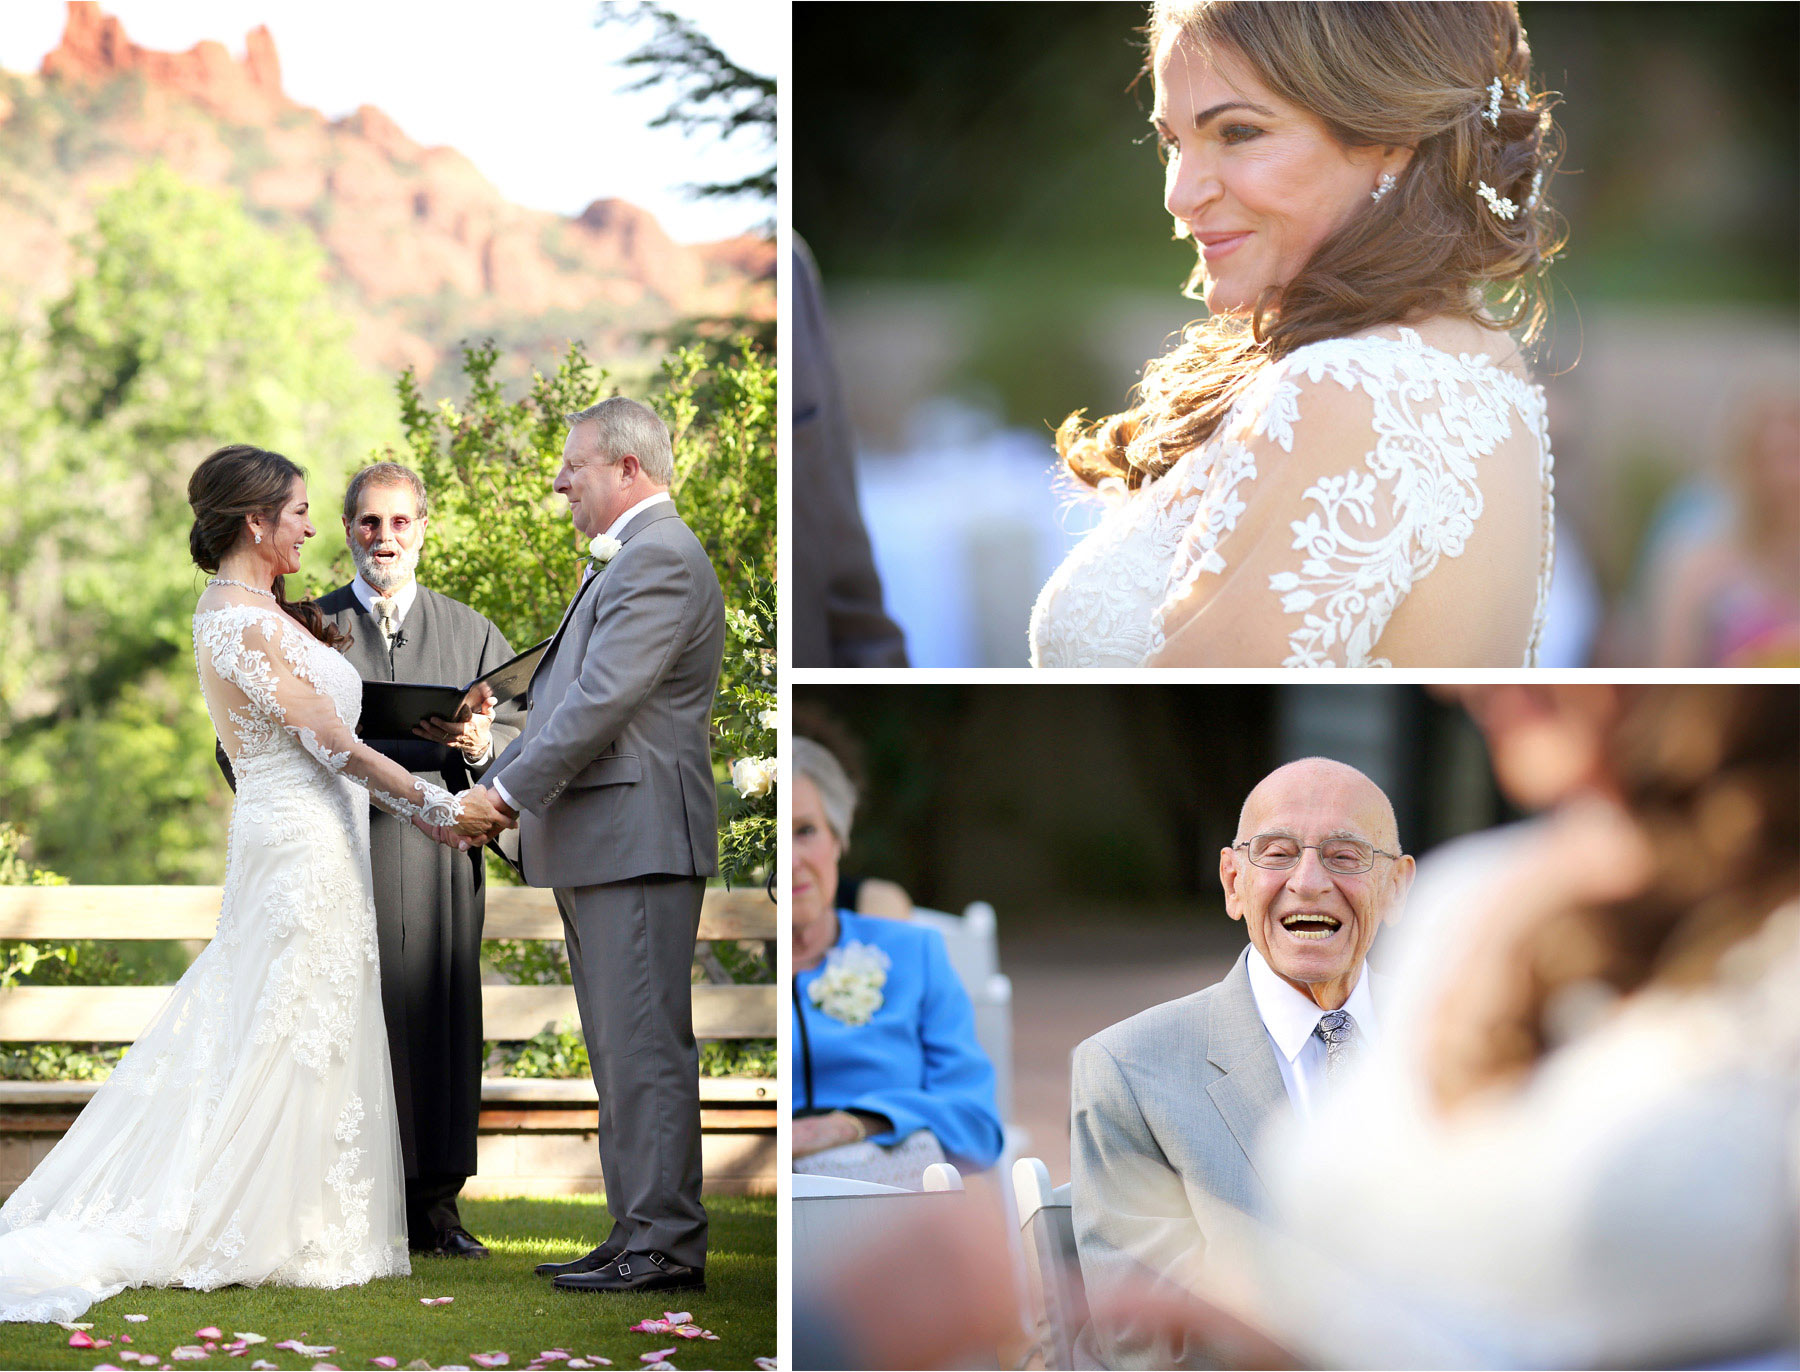 17-Sedona-Arizona-Wedding-Photographer-by-Andrew-Vick-Photography-Spring--LAuberge-de-Sedona-Resort-Ceremony-Garden-Lawn-Bride-Groom-Father-Parents-Vows-Barbara-and-Mike.jpg